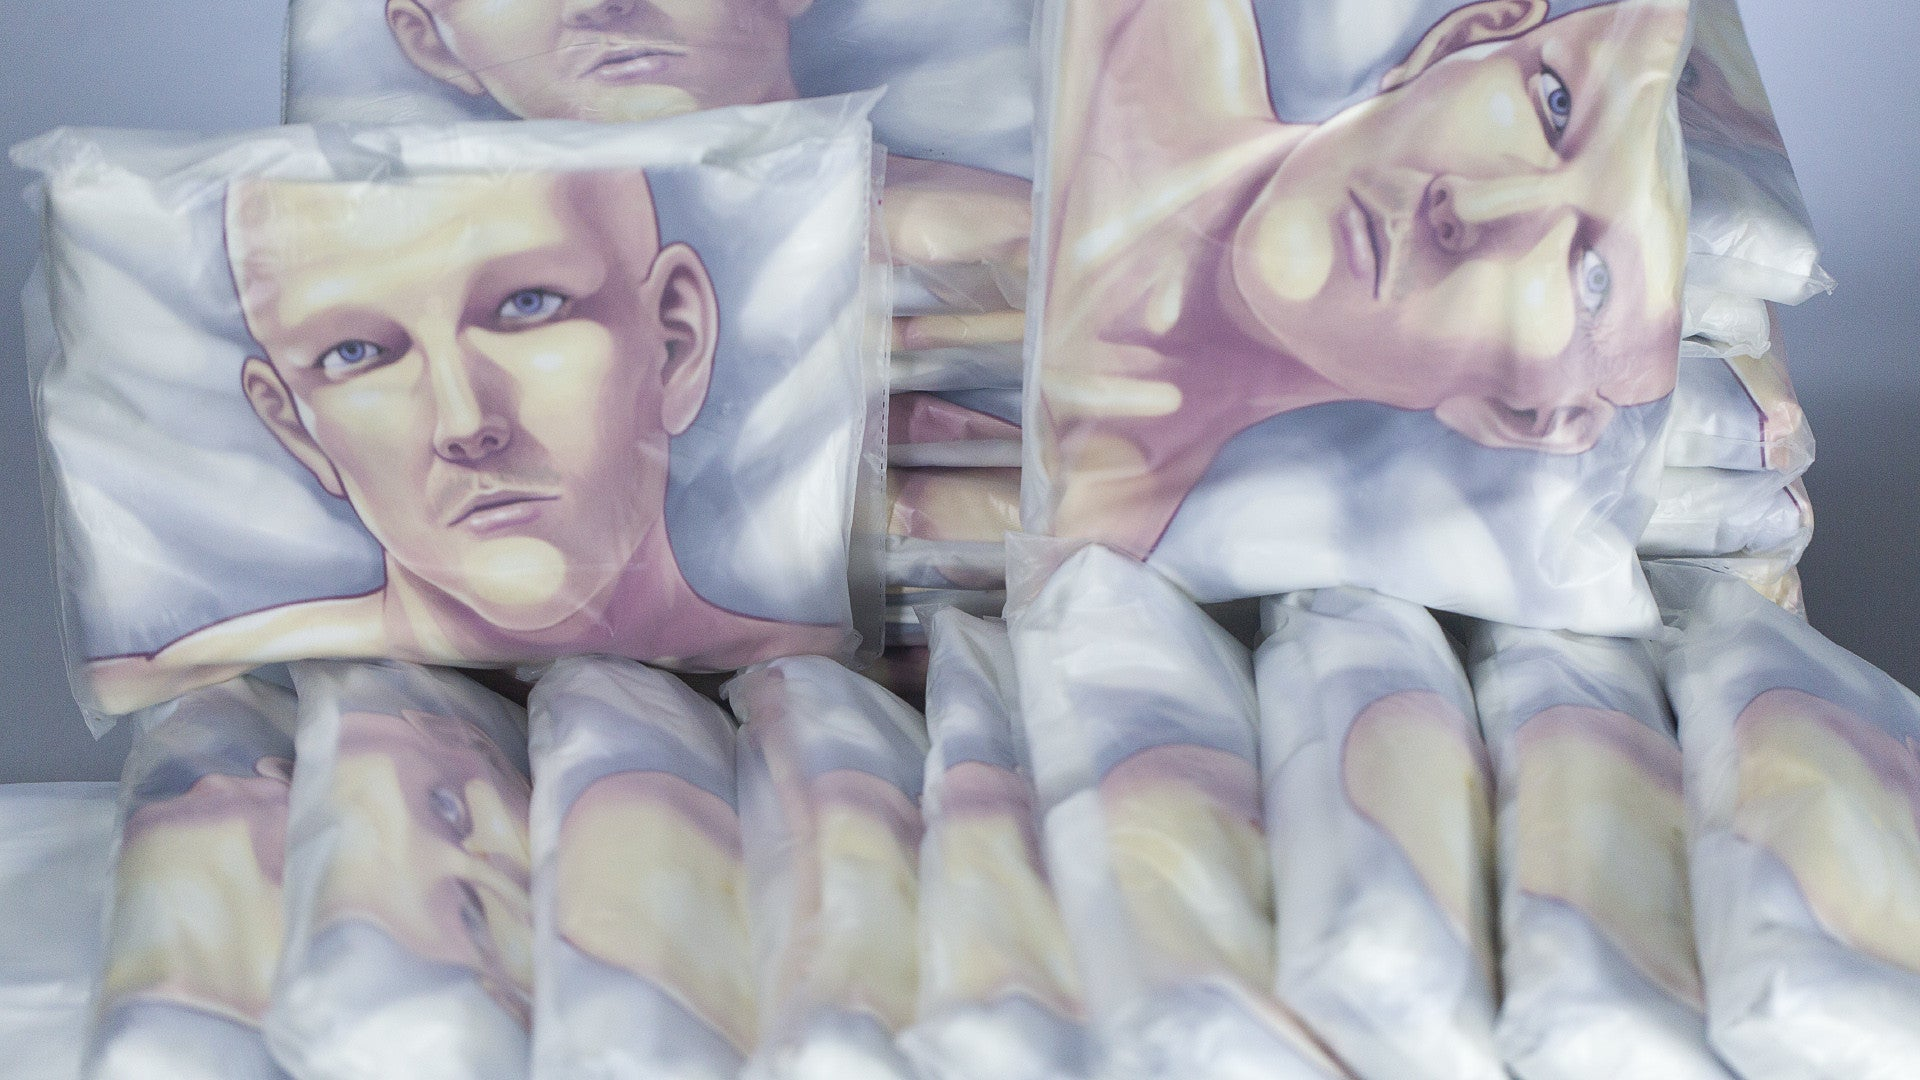 Deluxe Dakimakura Body Pillowcase